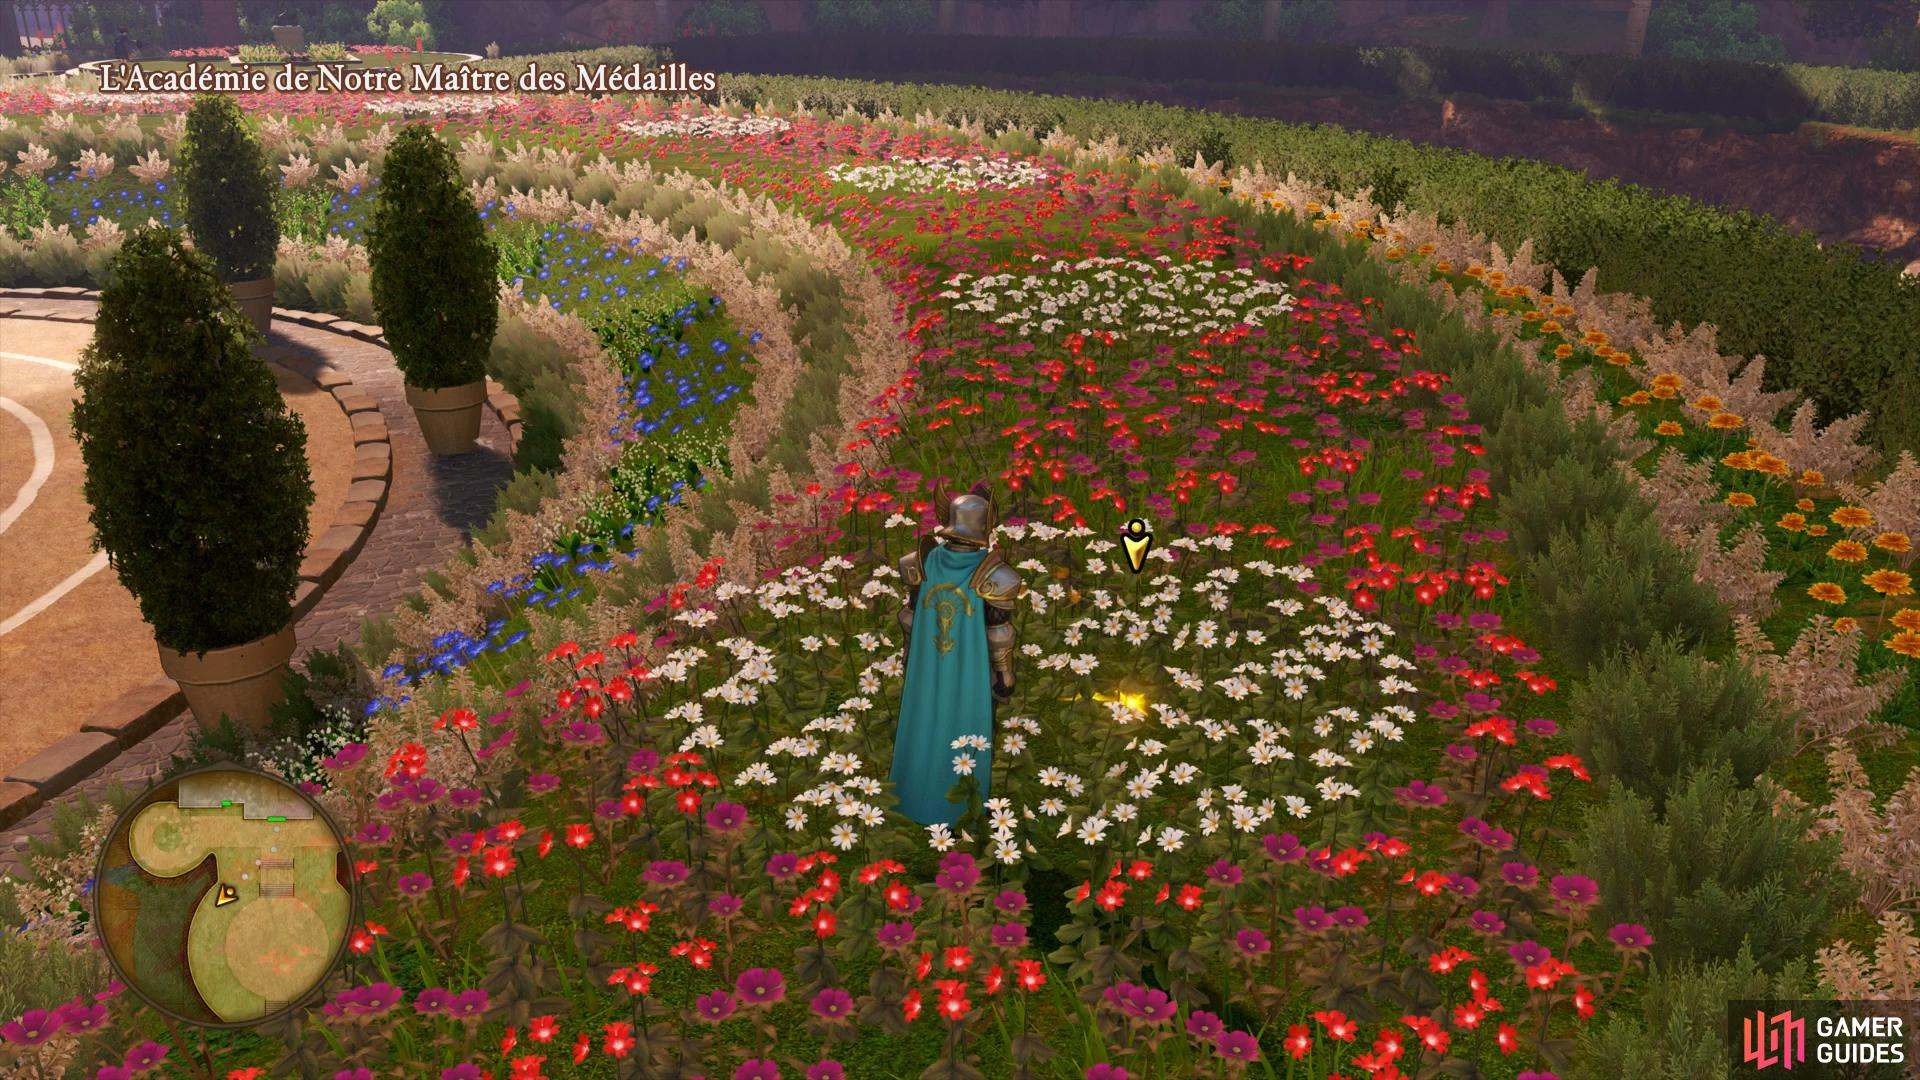 search the field of flowers to the southwest of the entrance to find the missing box.